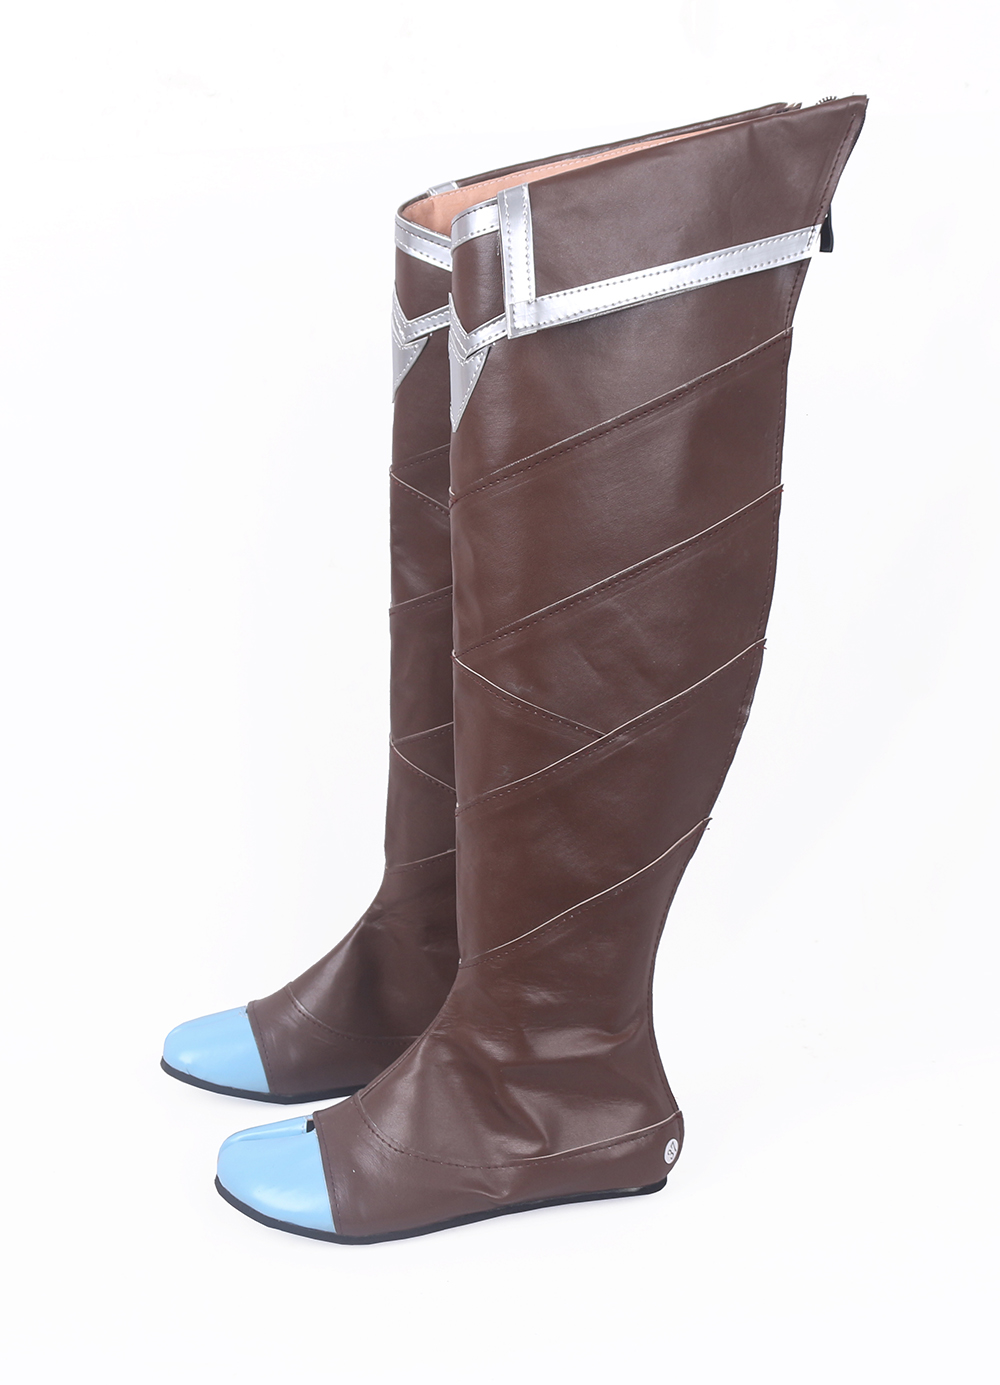 LOL Xayah The Rebel Cosplay Long Boots Shoes (3)